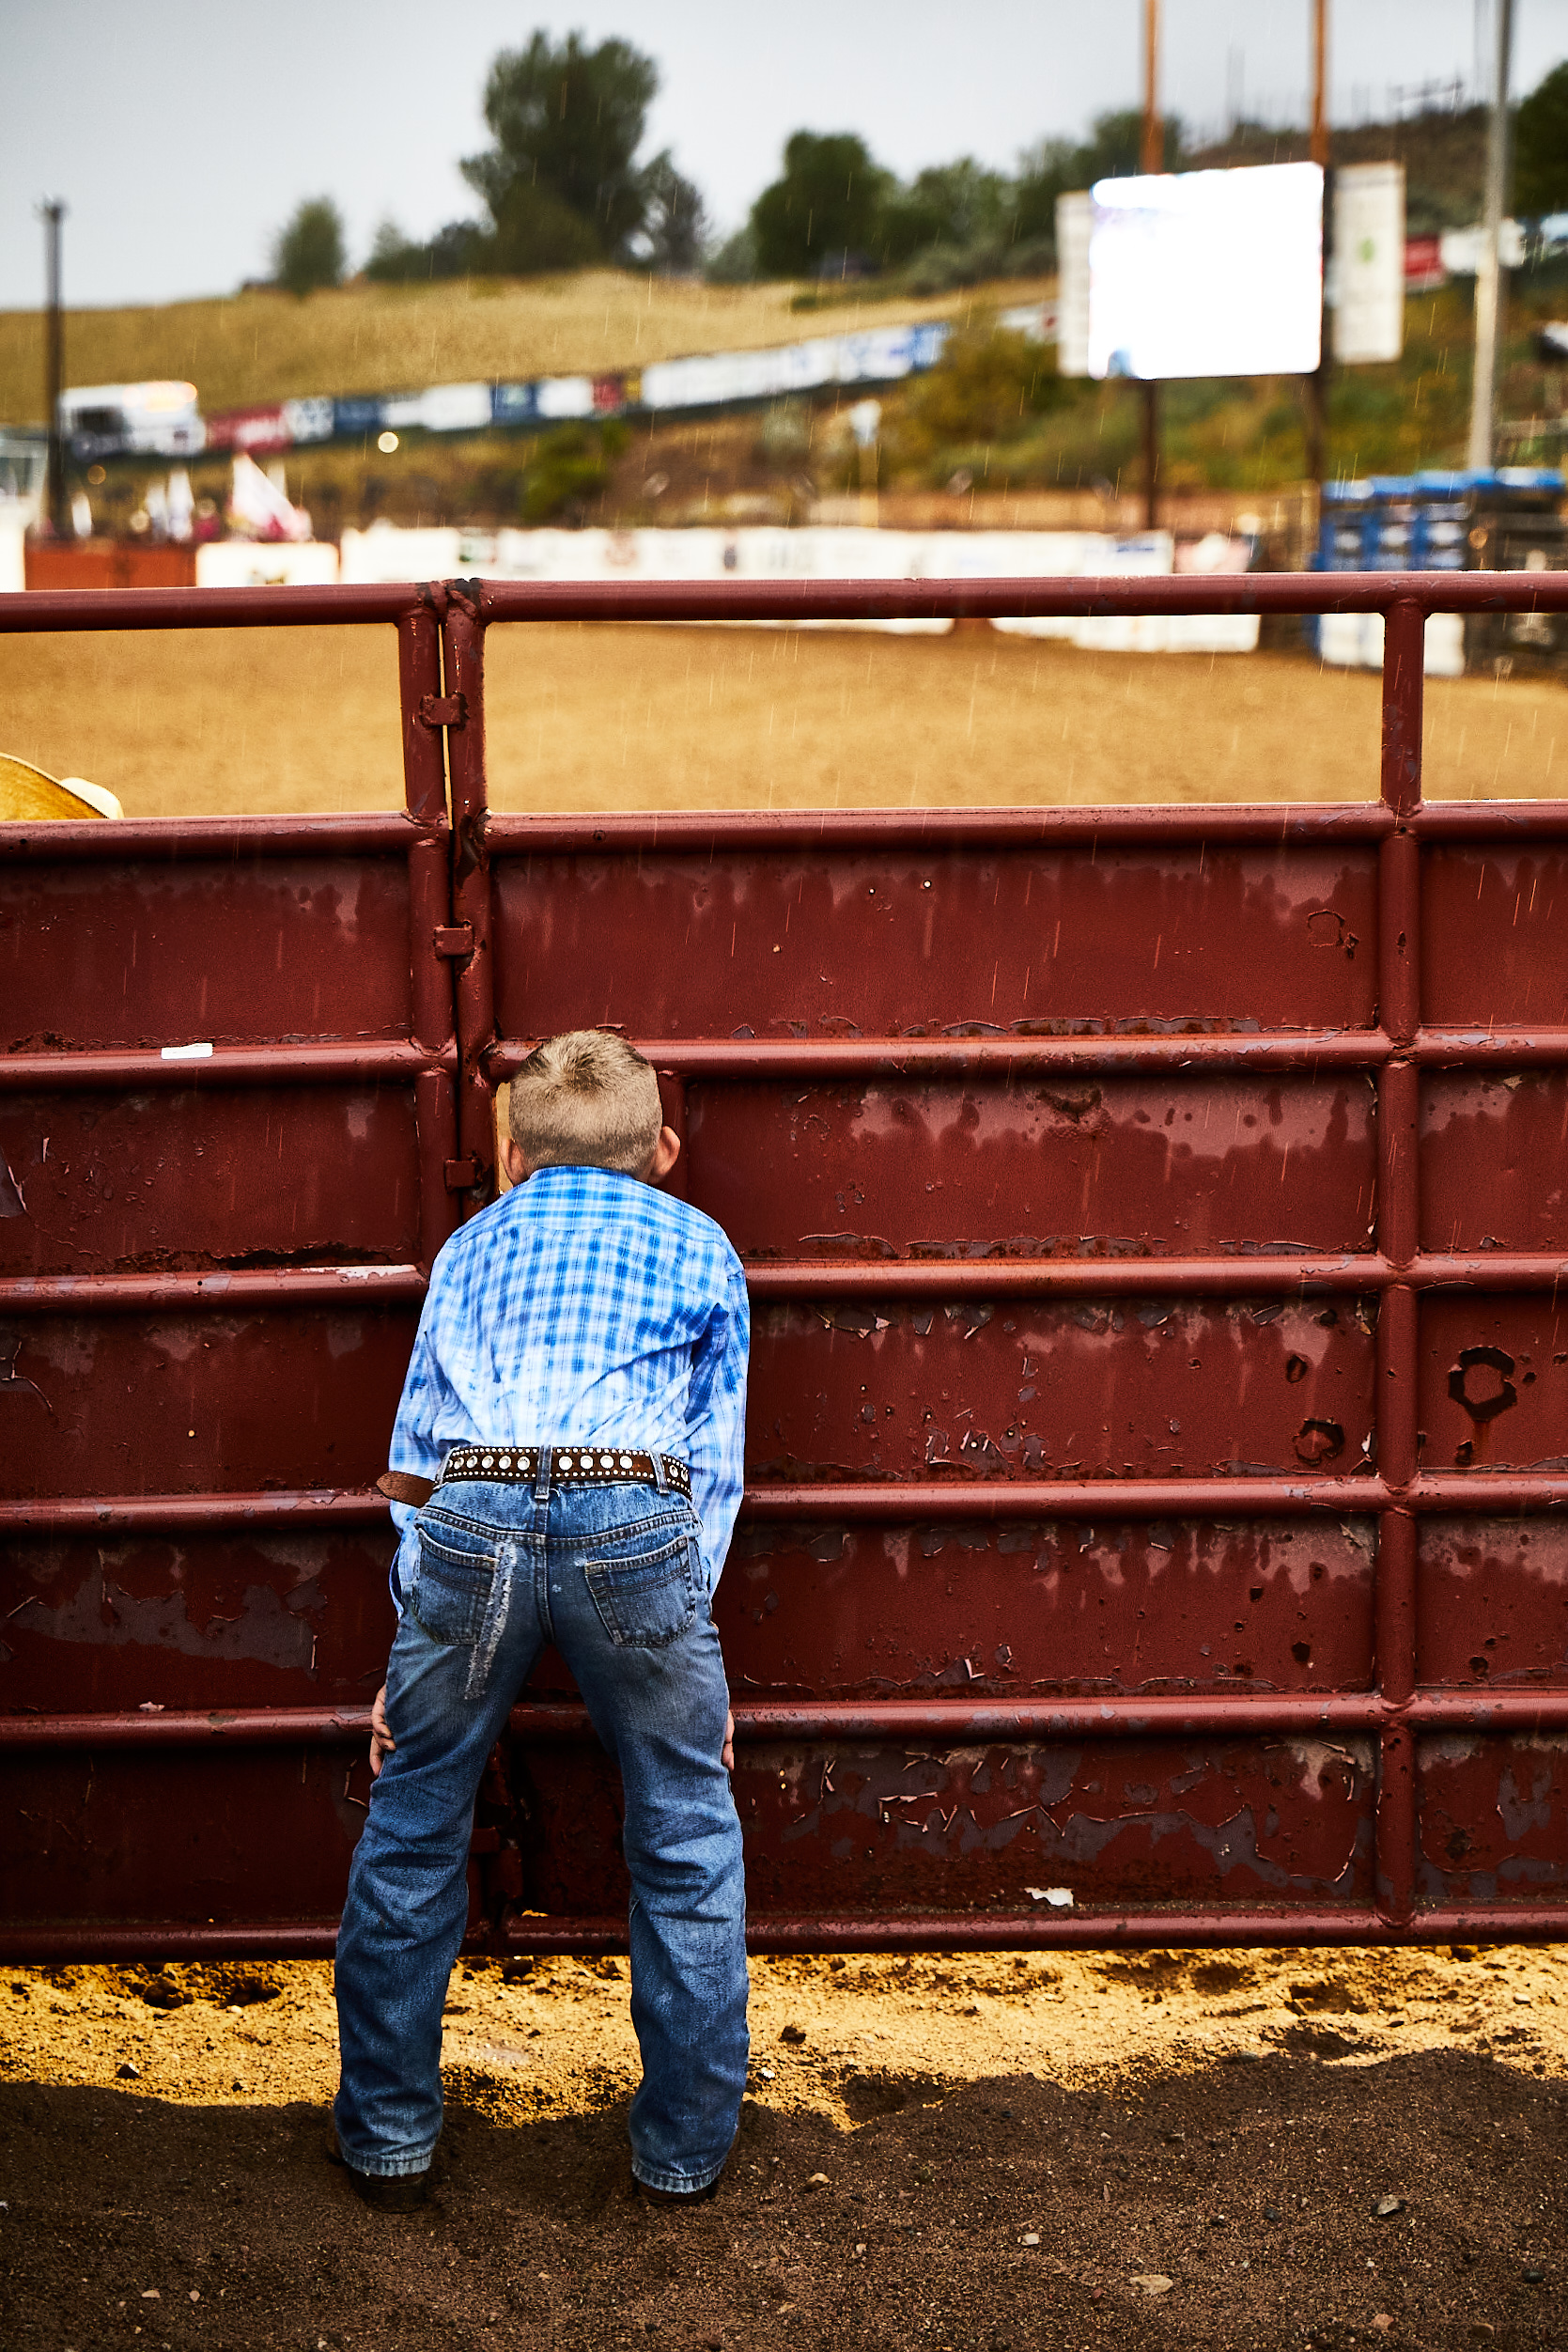 Eagle rodeo in eagle colorado kid looking through fence